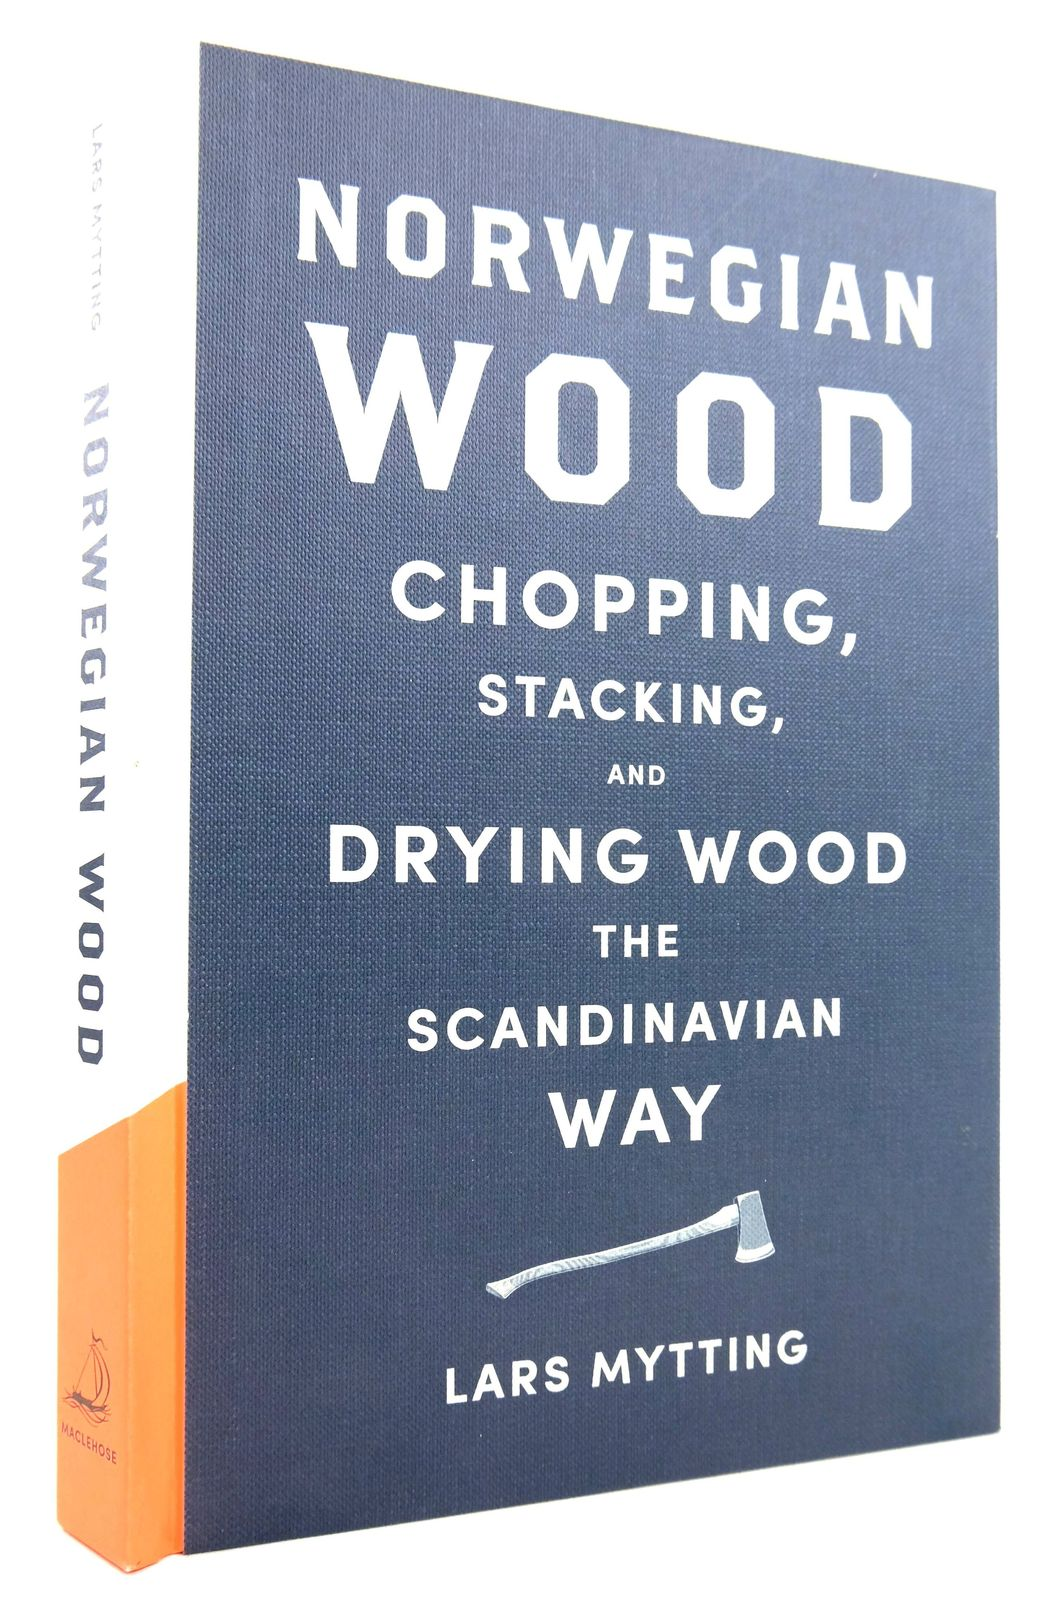 Photo of NORWEGIAN WOOD CHOPPING, STACKING, AND DRYING WOOD THE SCANDINAVIAN WAY- Stock Number: 1819353